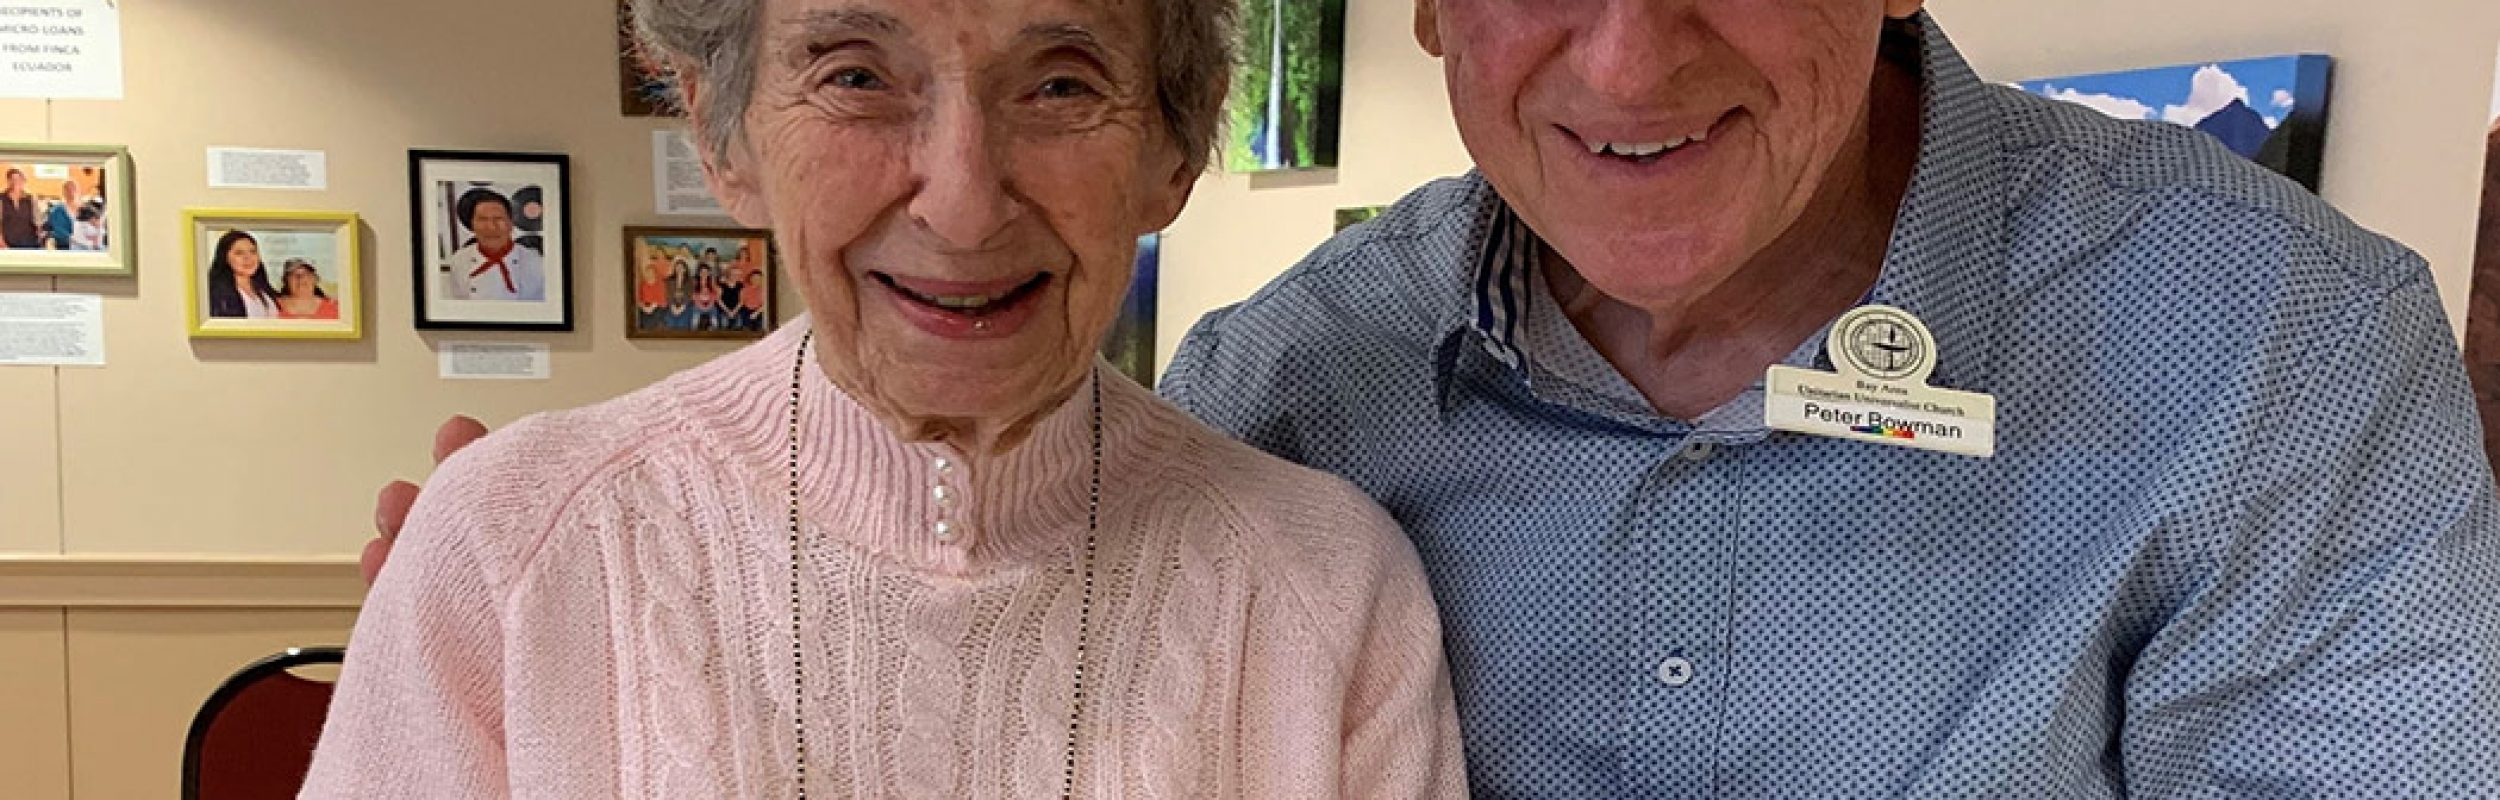 Ellie-and-Peter-of-the-BAUUC